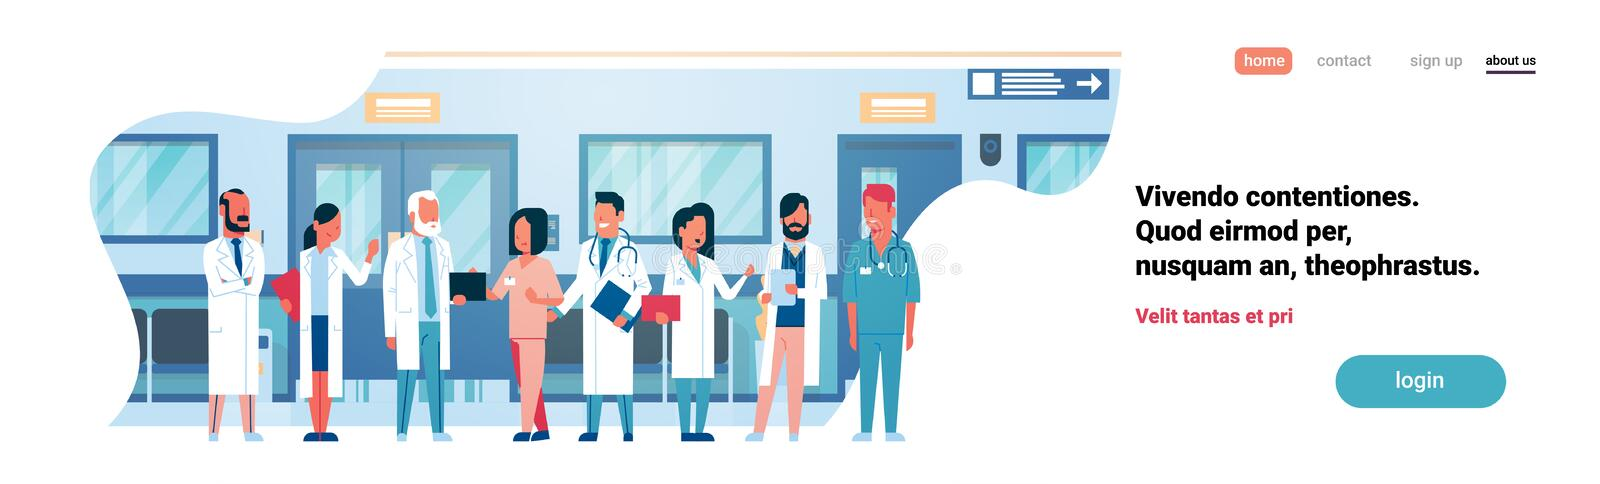 Group doctors hospital corridor diverse medical workers modern clinic banner copy space flat full length royalty free illustration